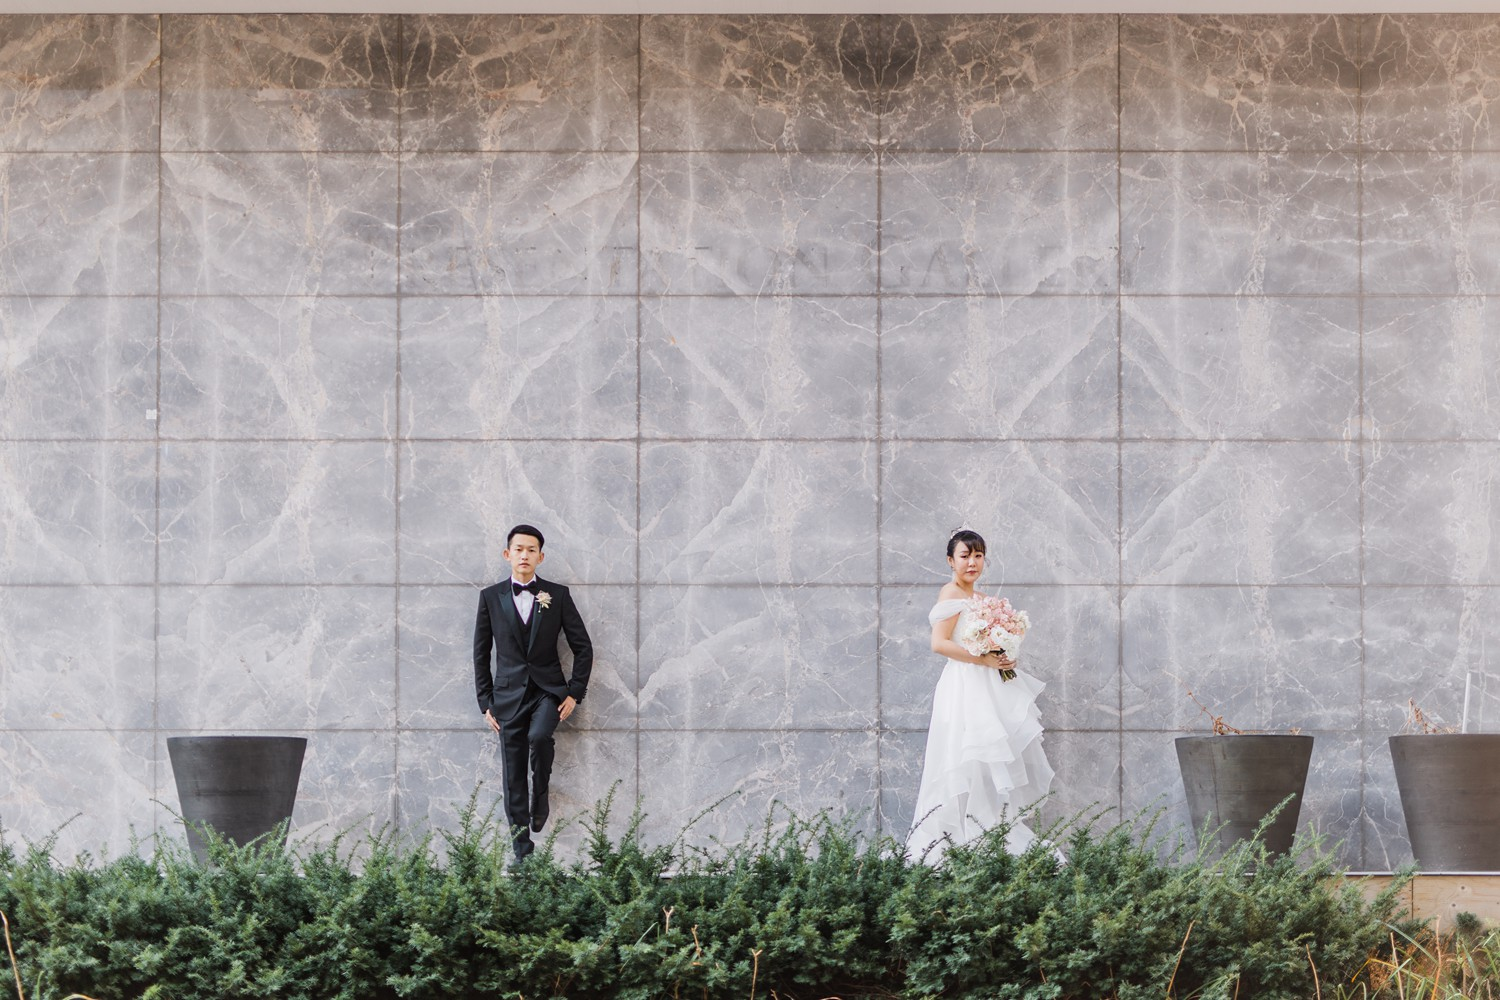 Modern Wedding Portraits at Luxury Yorkville Vinci Toronto Four Season Hotel Wedding Photos with Chinese Bride and Groom